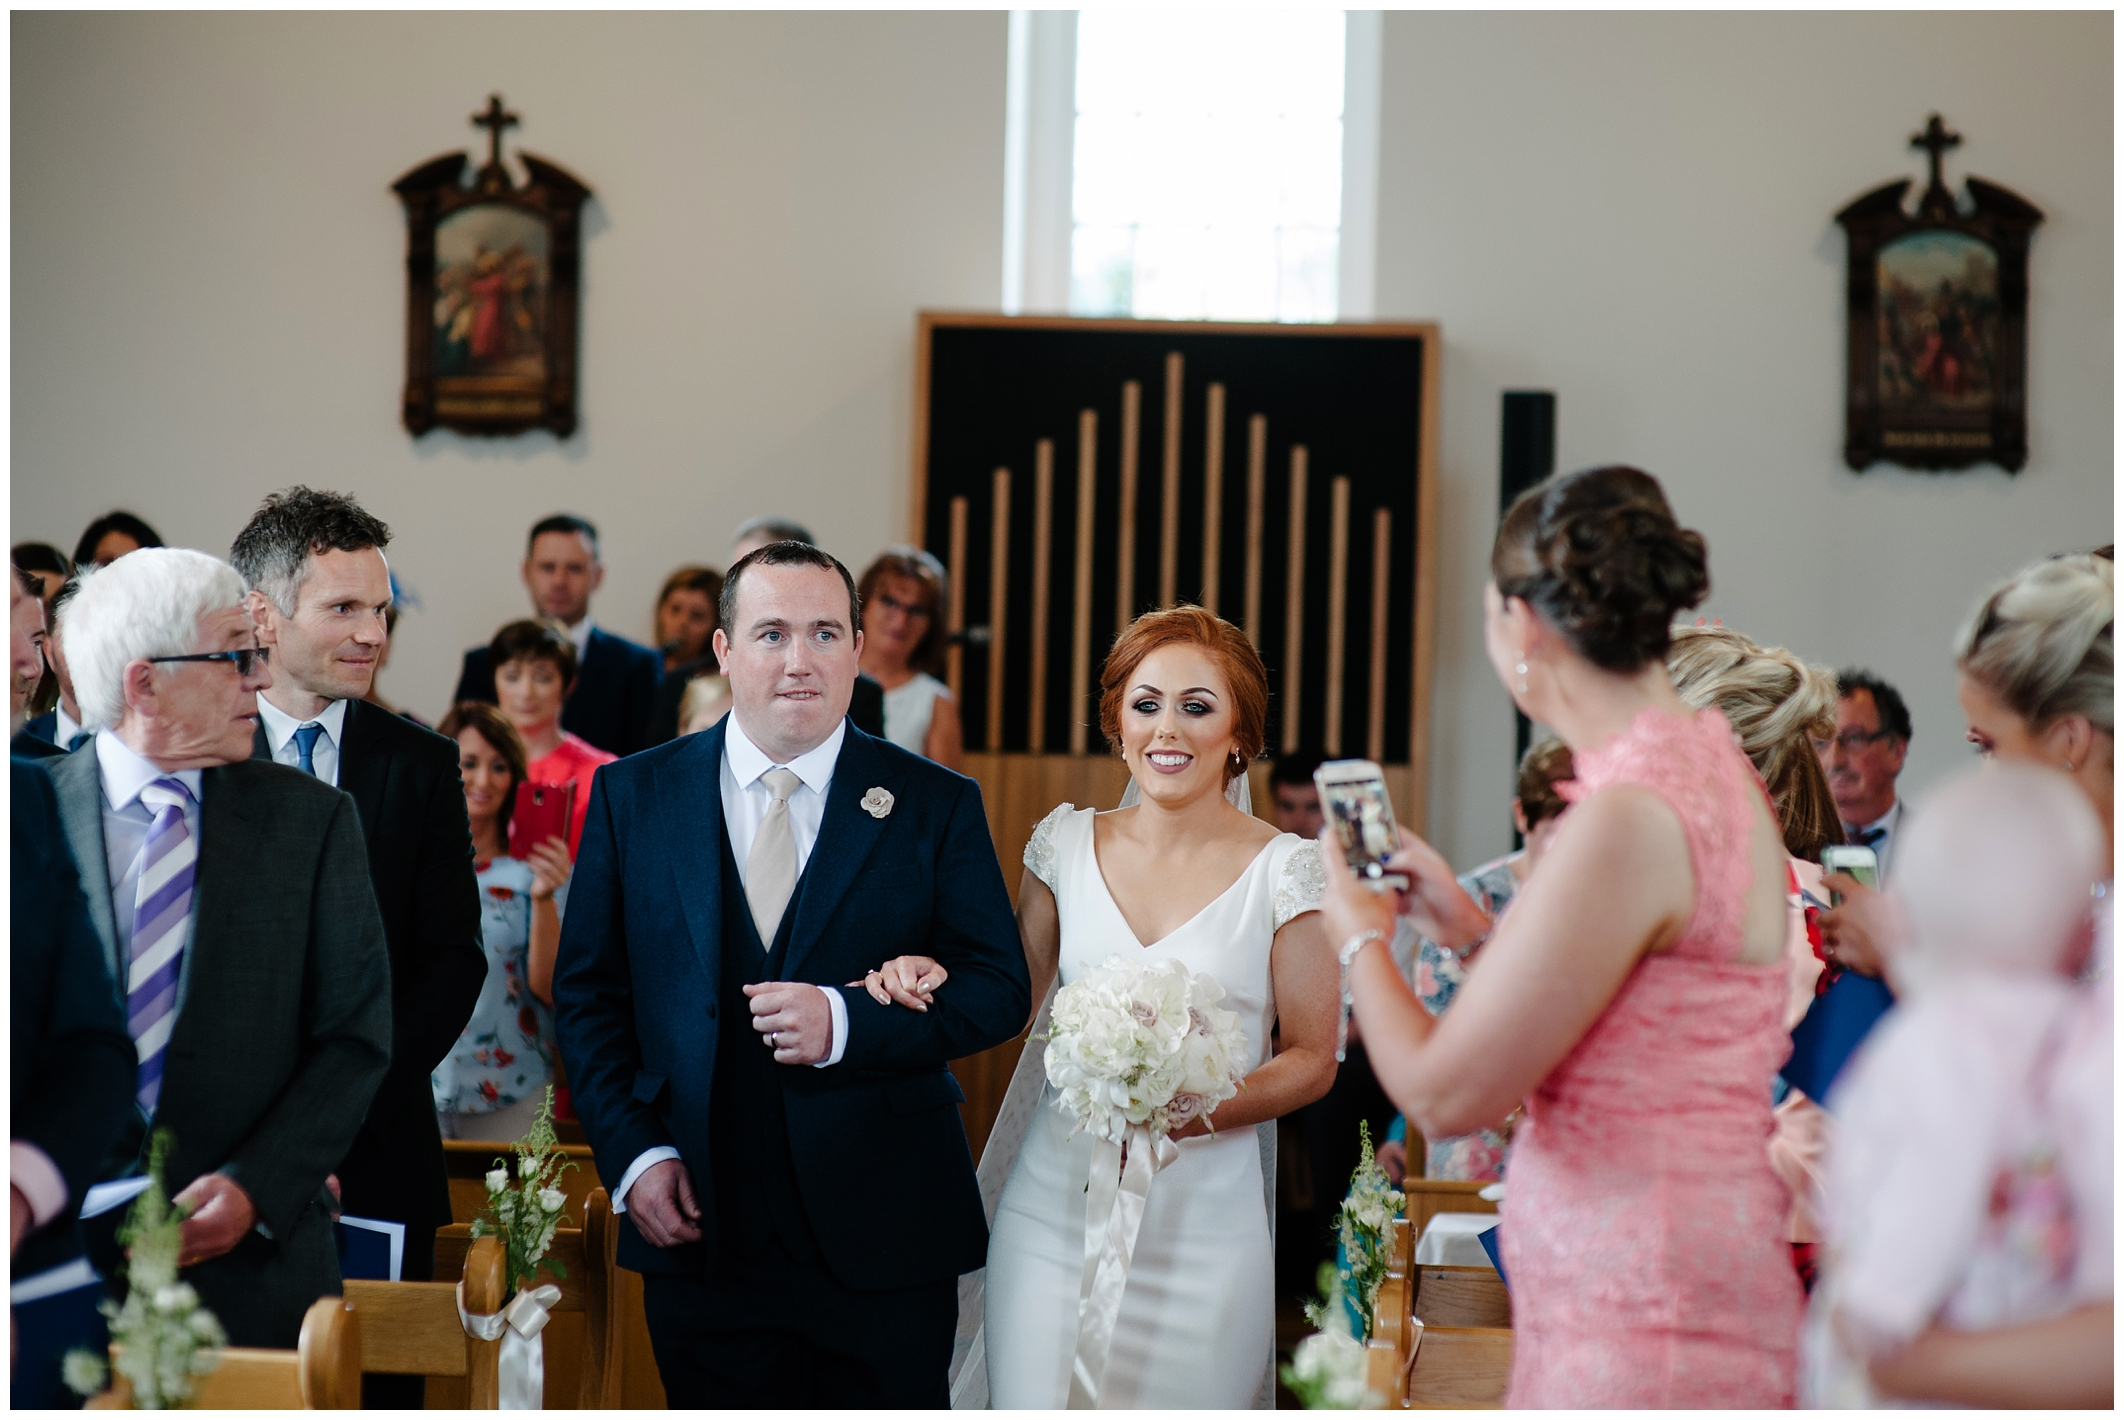 sinead_emmet_farnham_estate_wedding_jude_browne_photography_0056.jpg